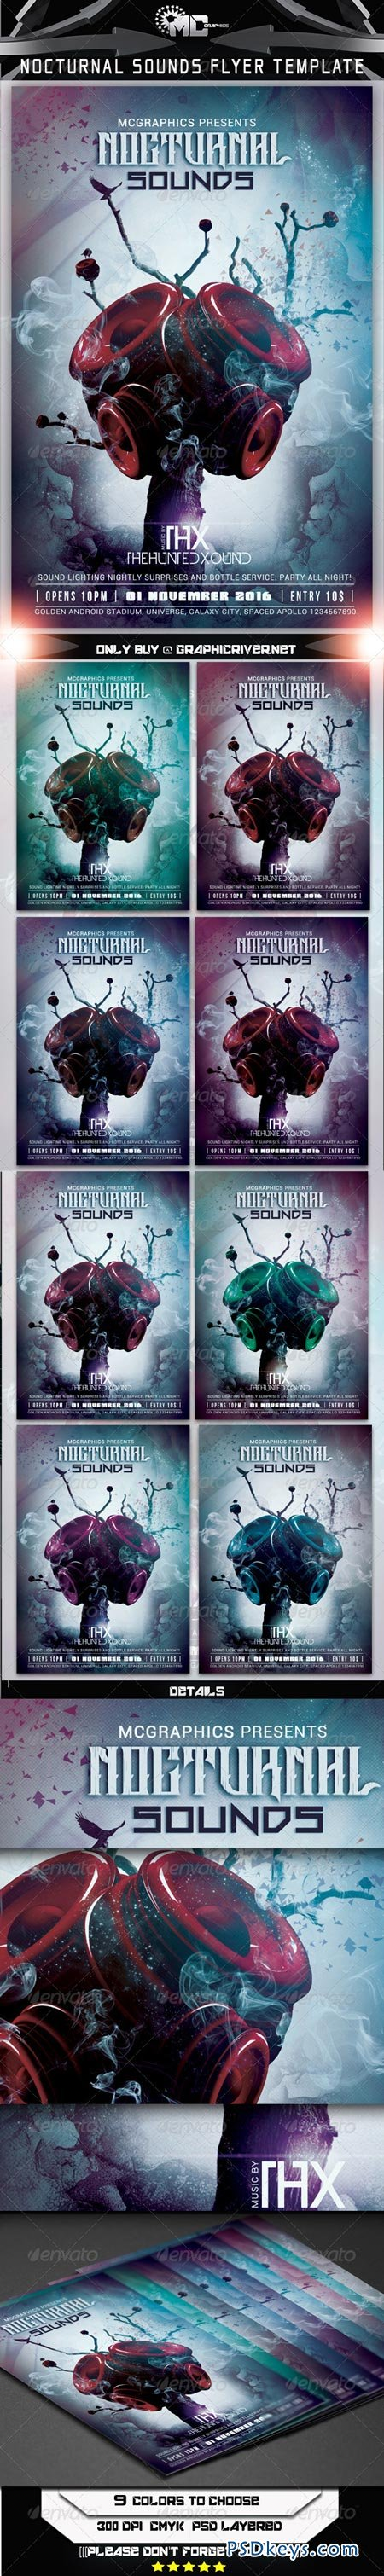 Nocturnal Sounds Flyer Template 7910675